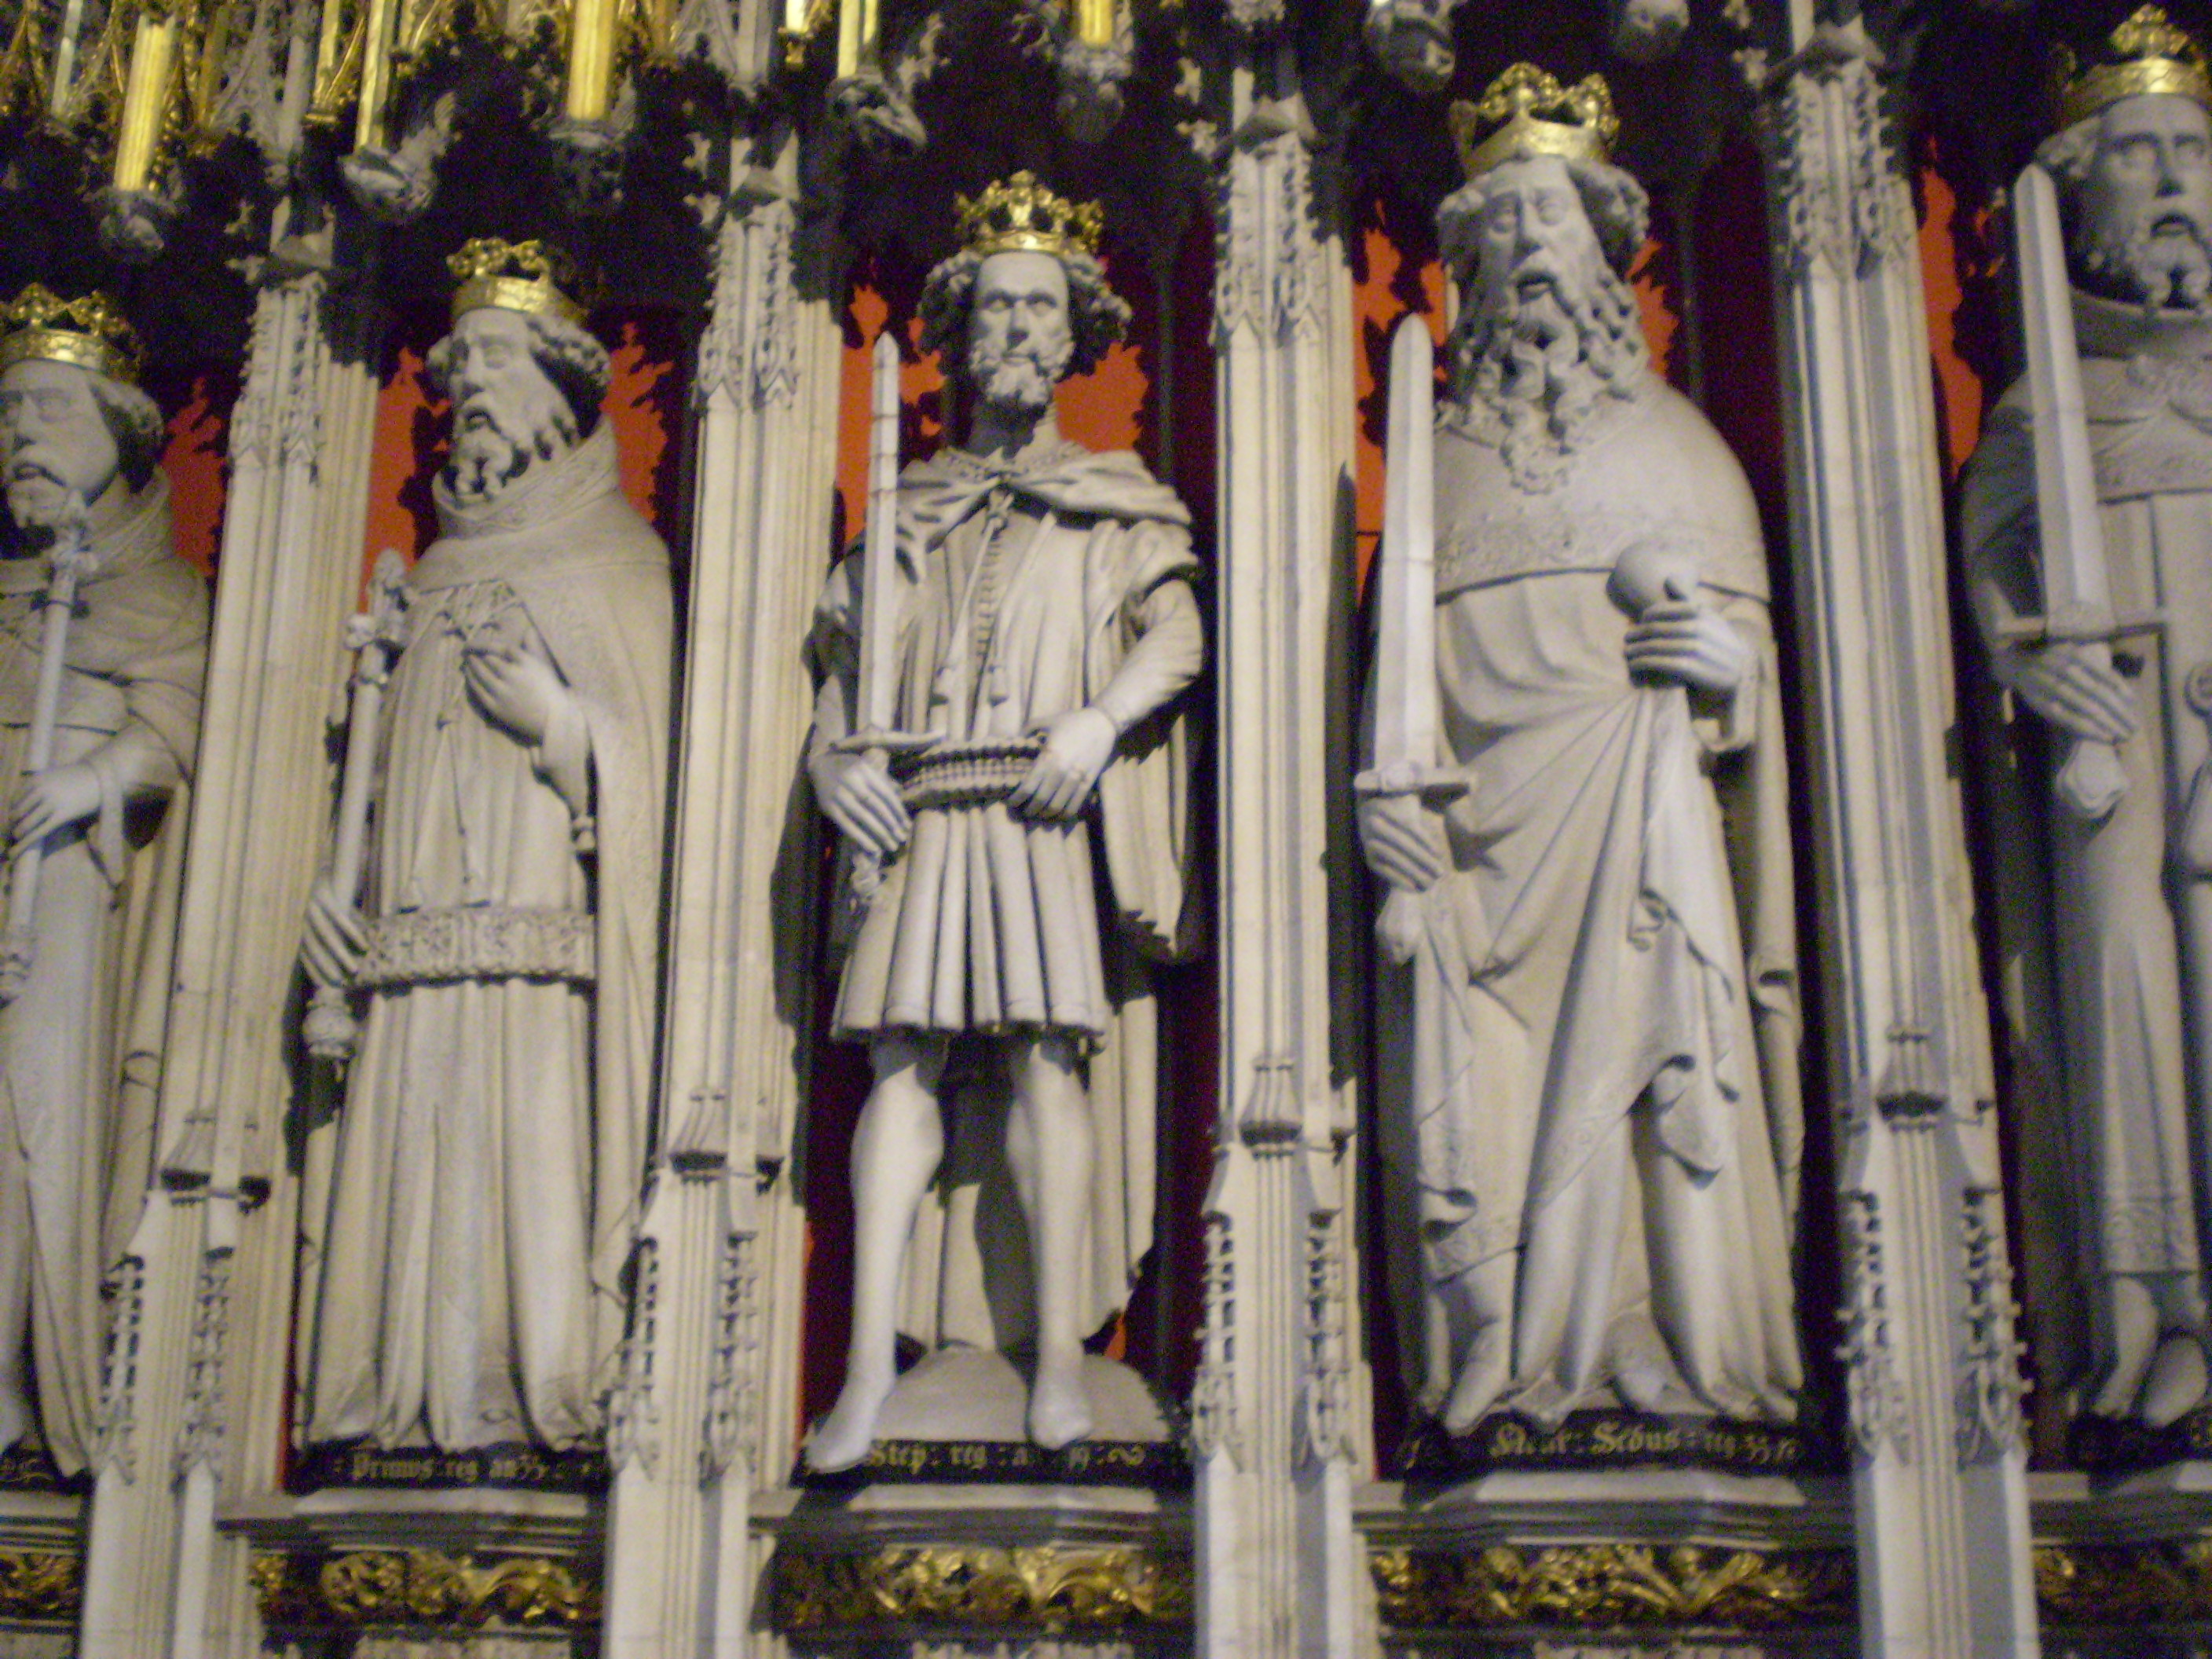 File:Statues of the Kings of England, York.jpg - Wikimedia Commons